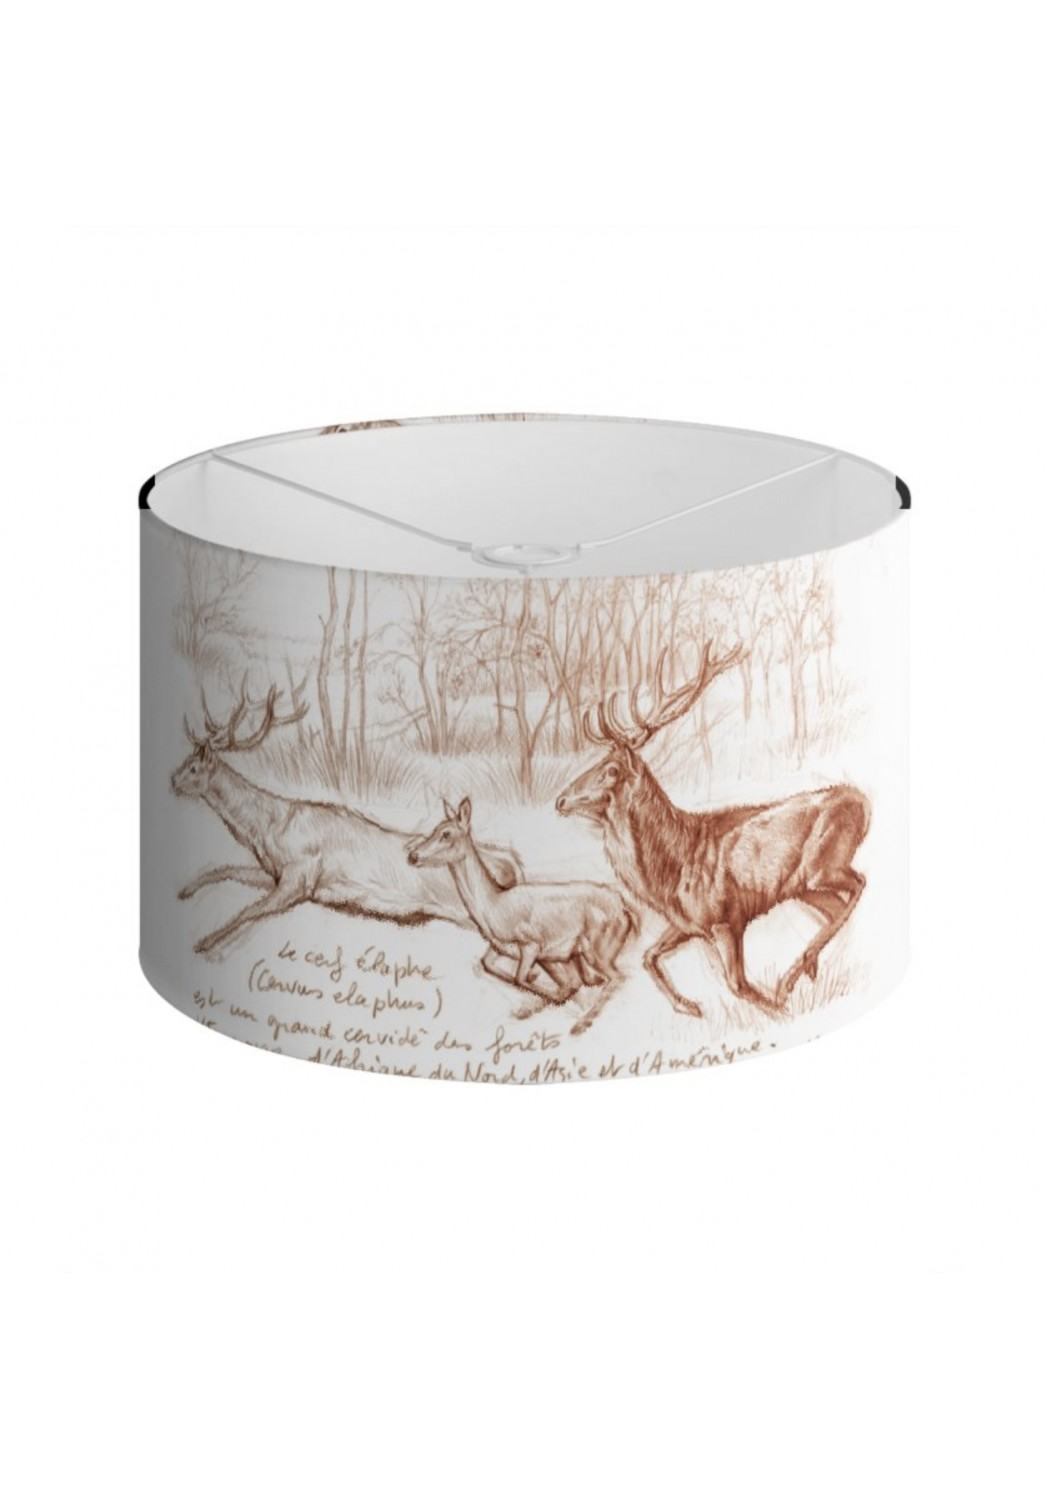 Marcello-art: Decoration accessoiries Lampshade 271 Red deer sepia